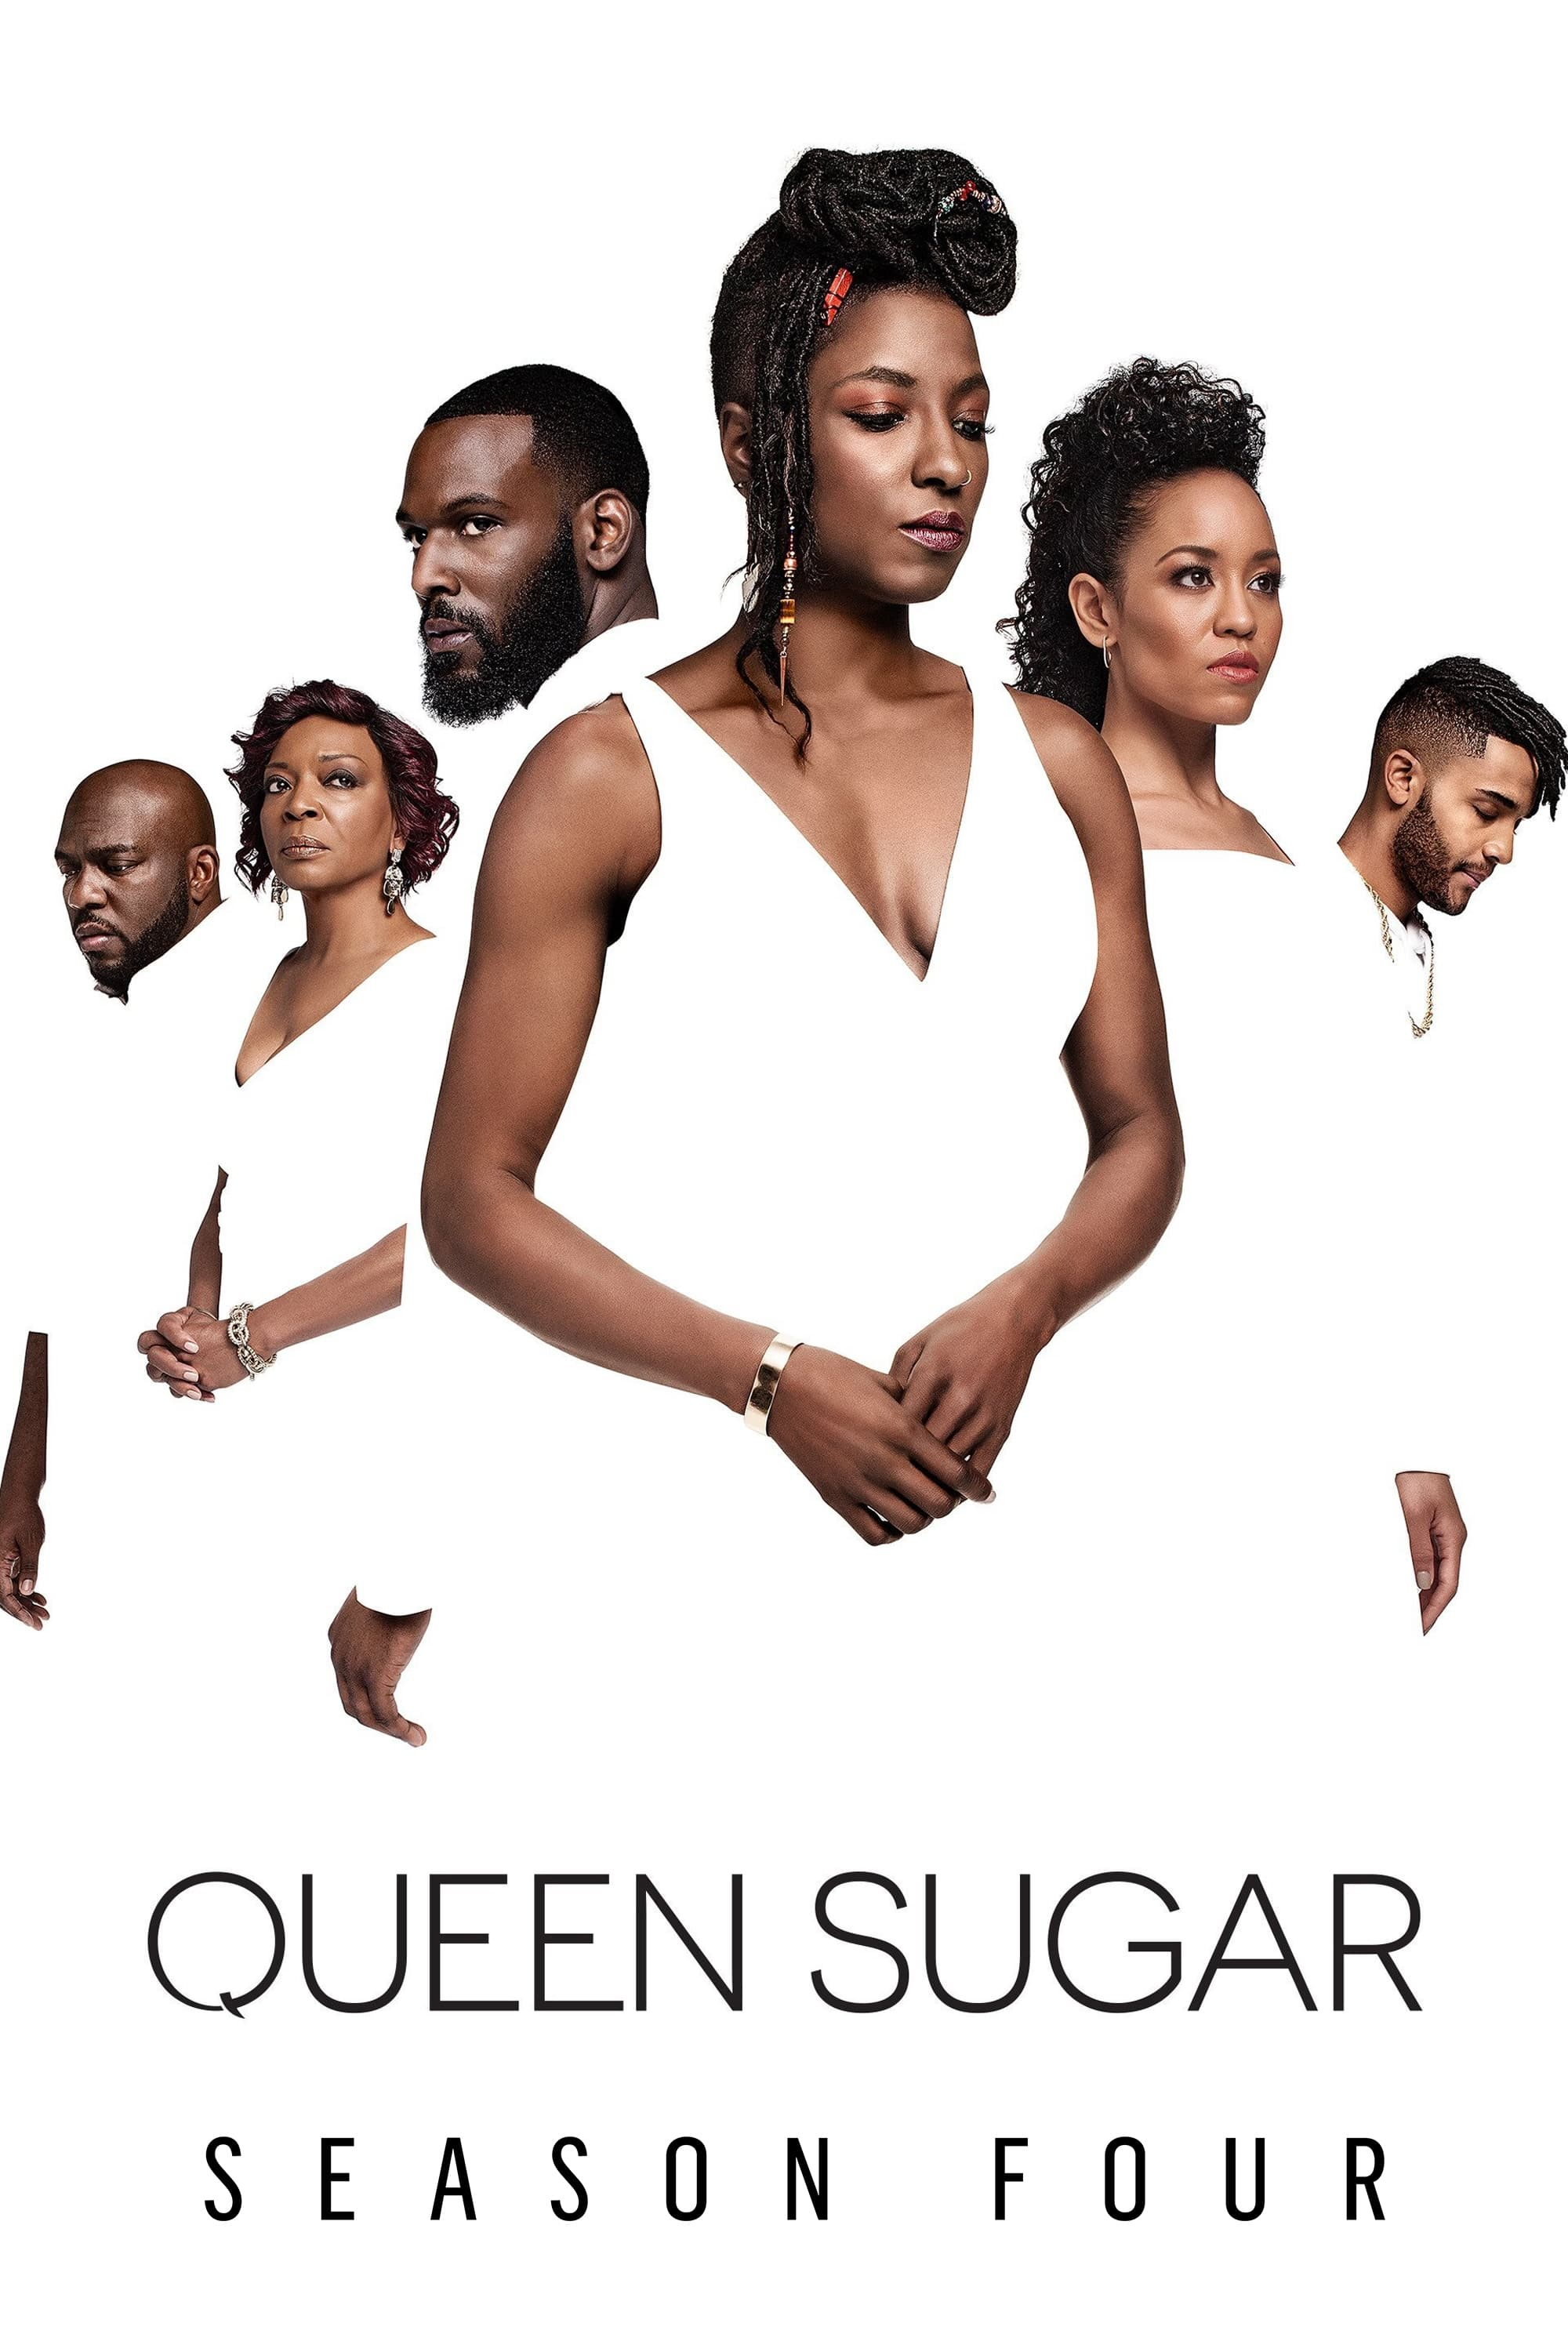 Queen Sugar Season 4